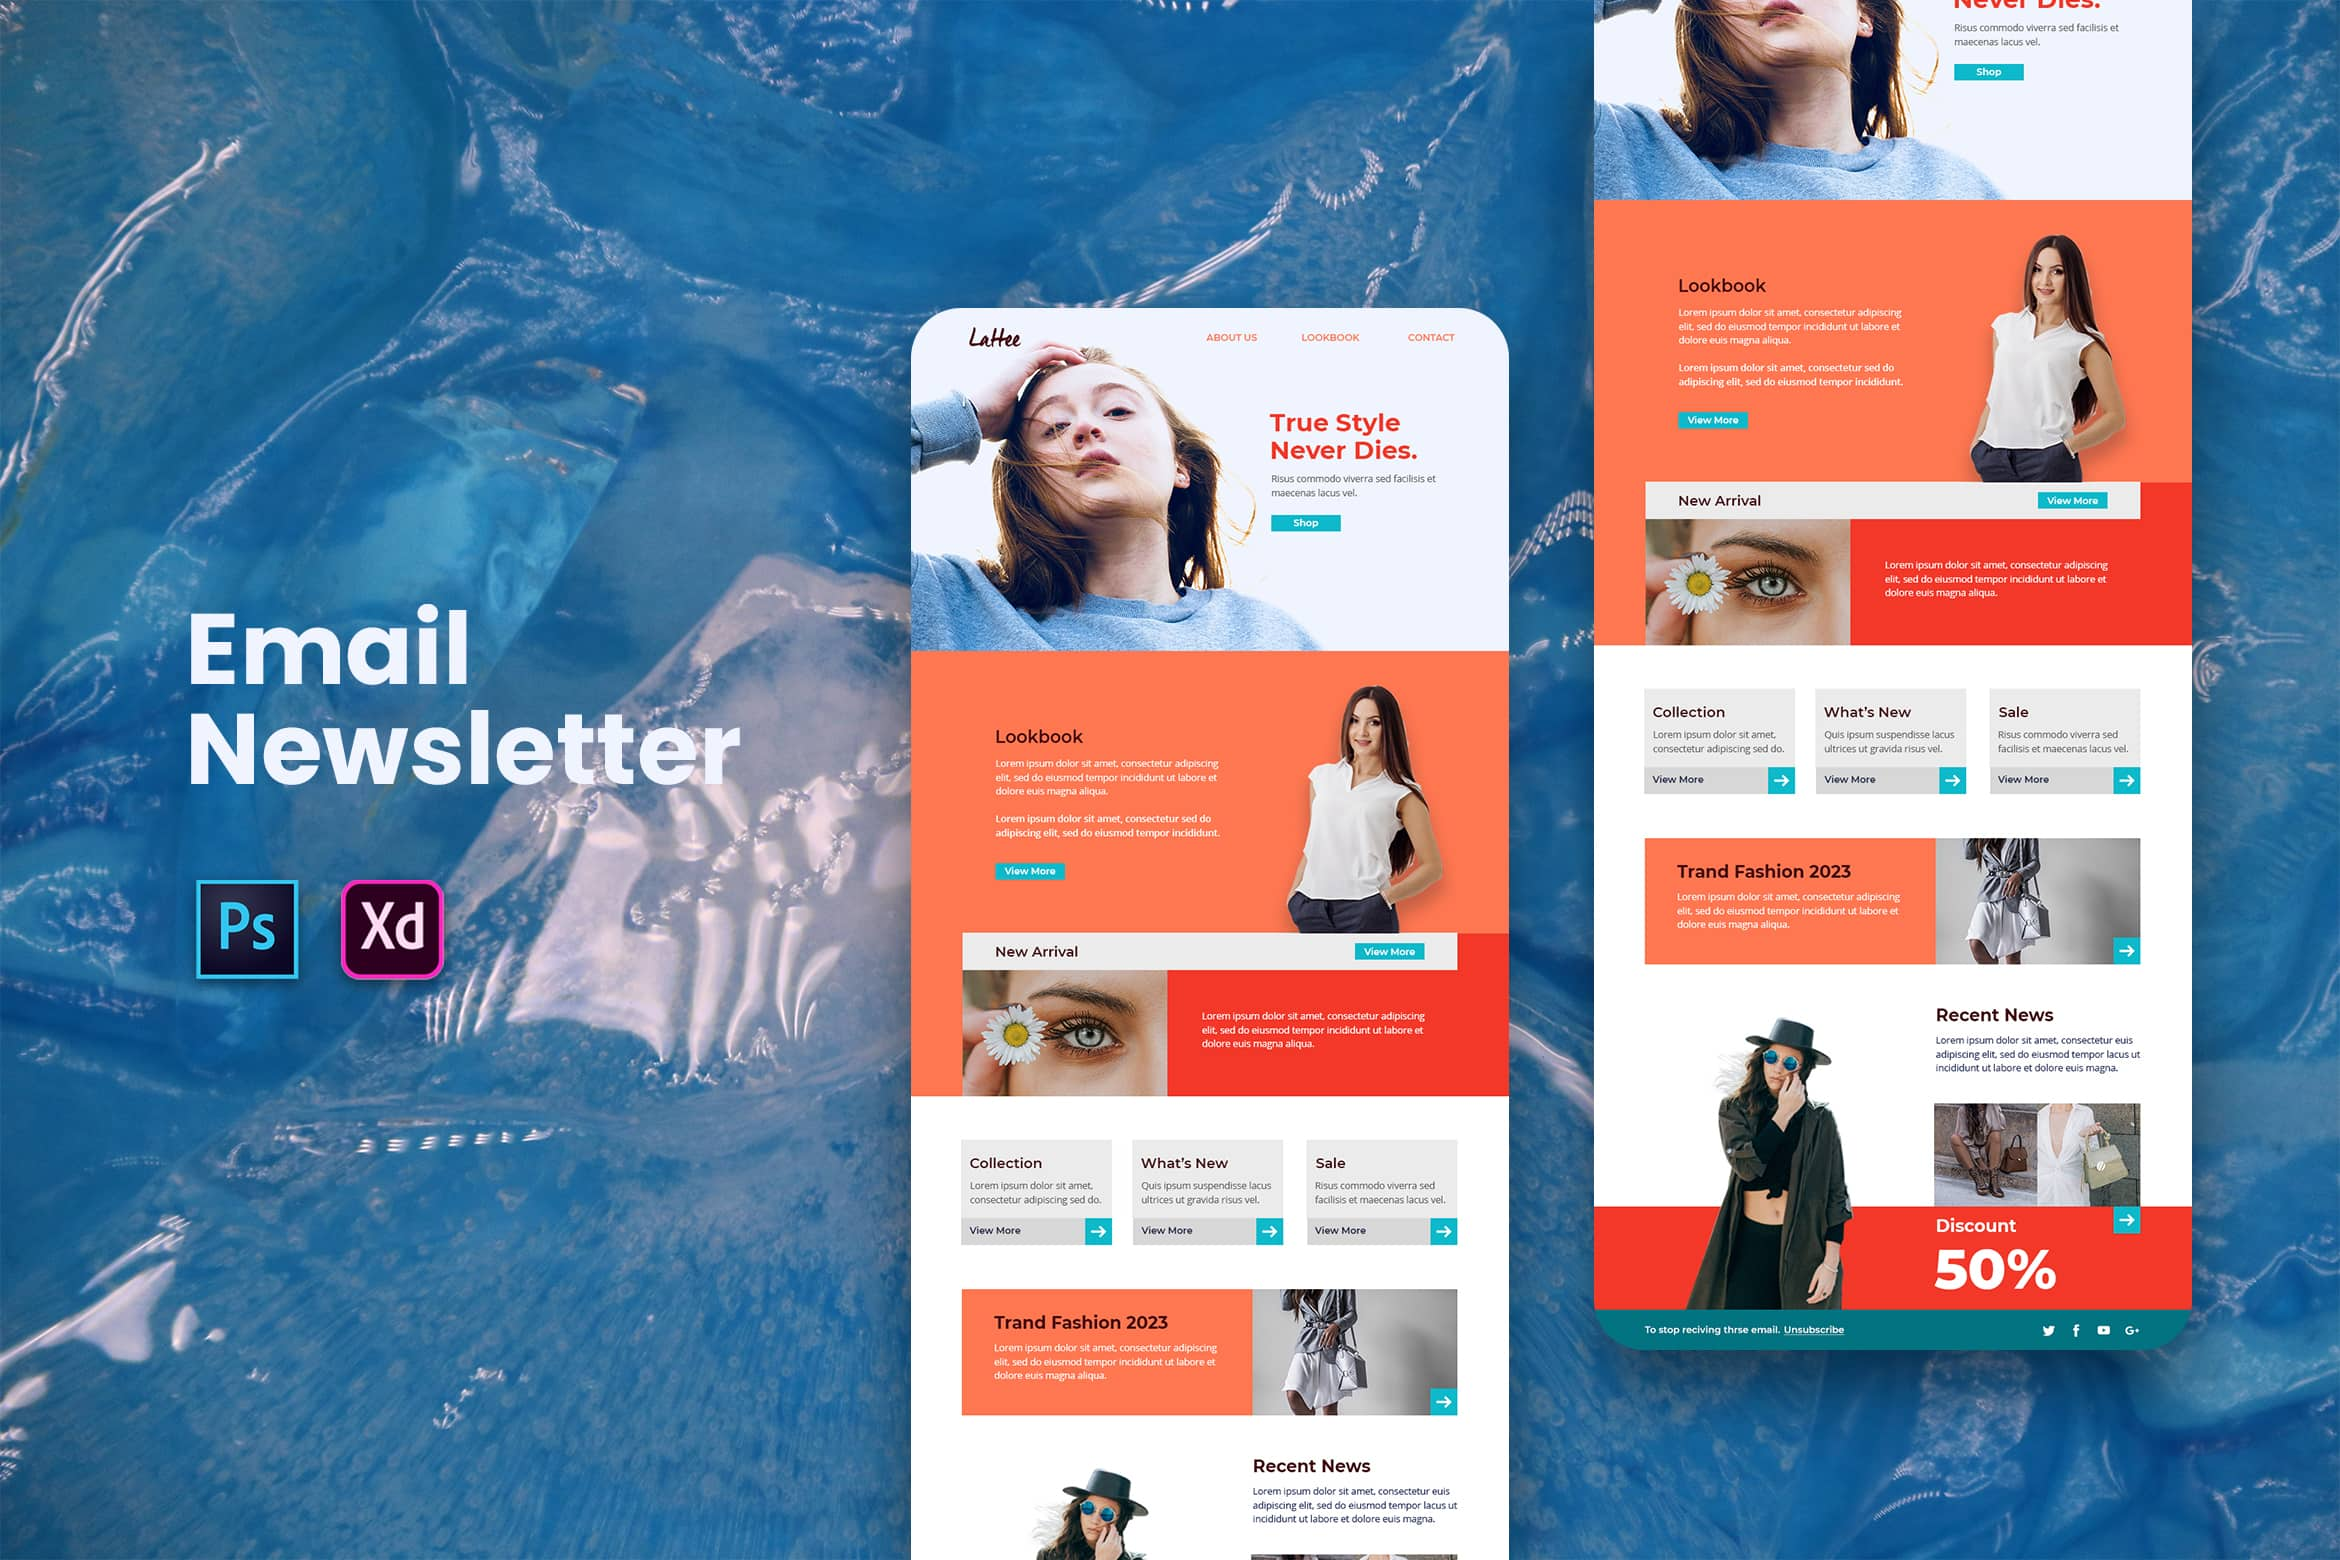 Fashion Trendy - Email Newsletter